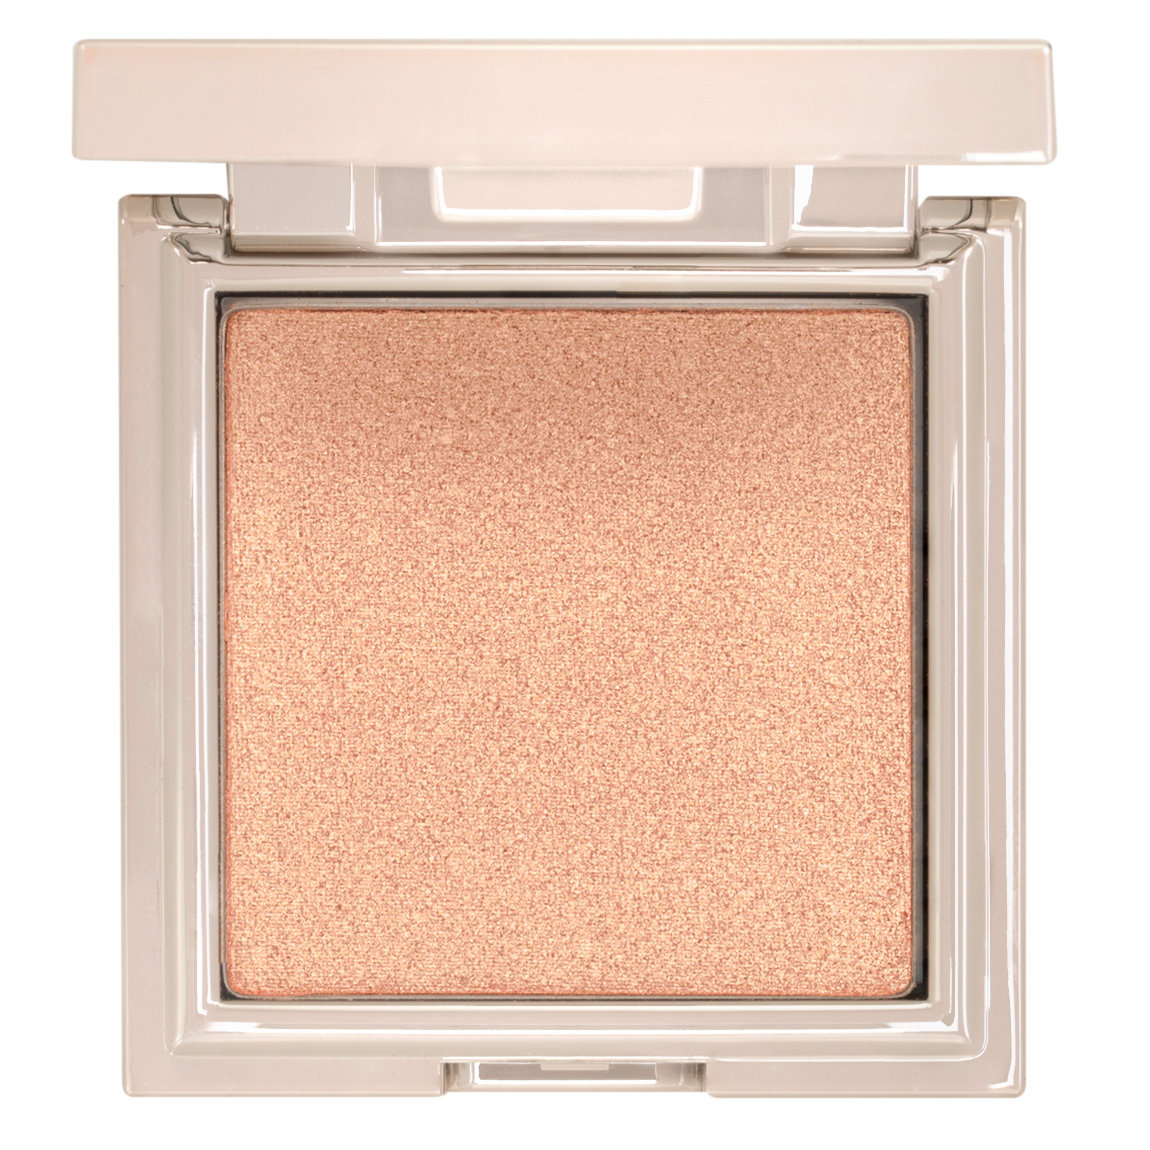 Jouer Cosmetics Powder Highlighter Skinny Dip product swatch.